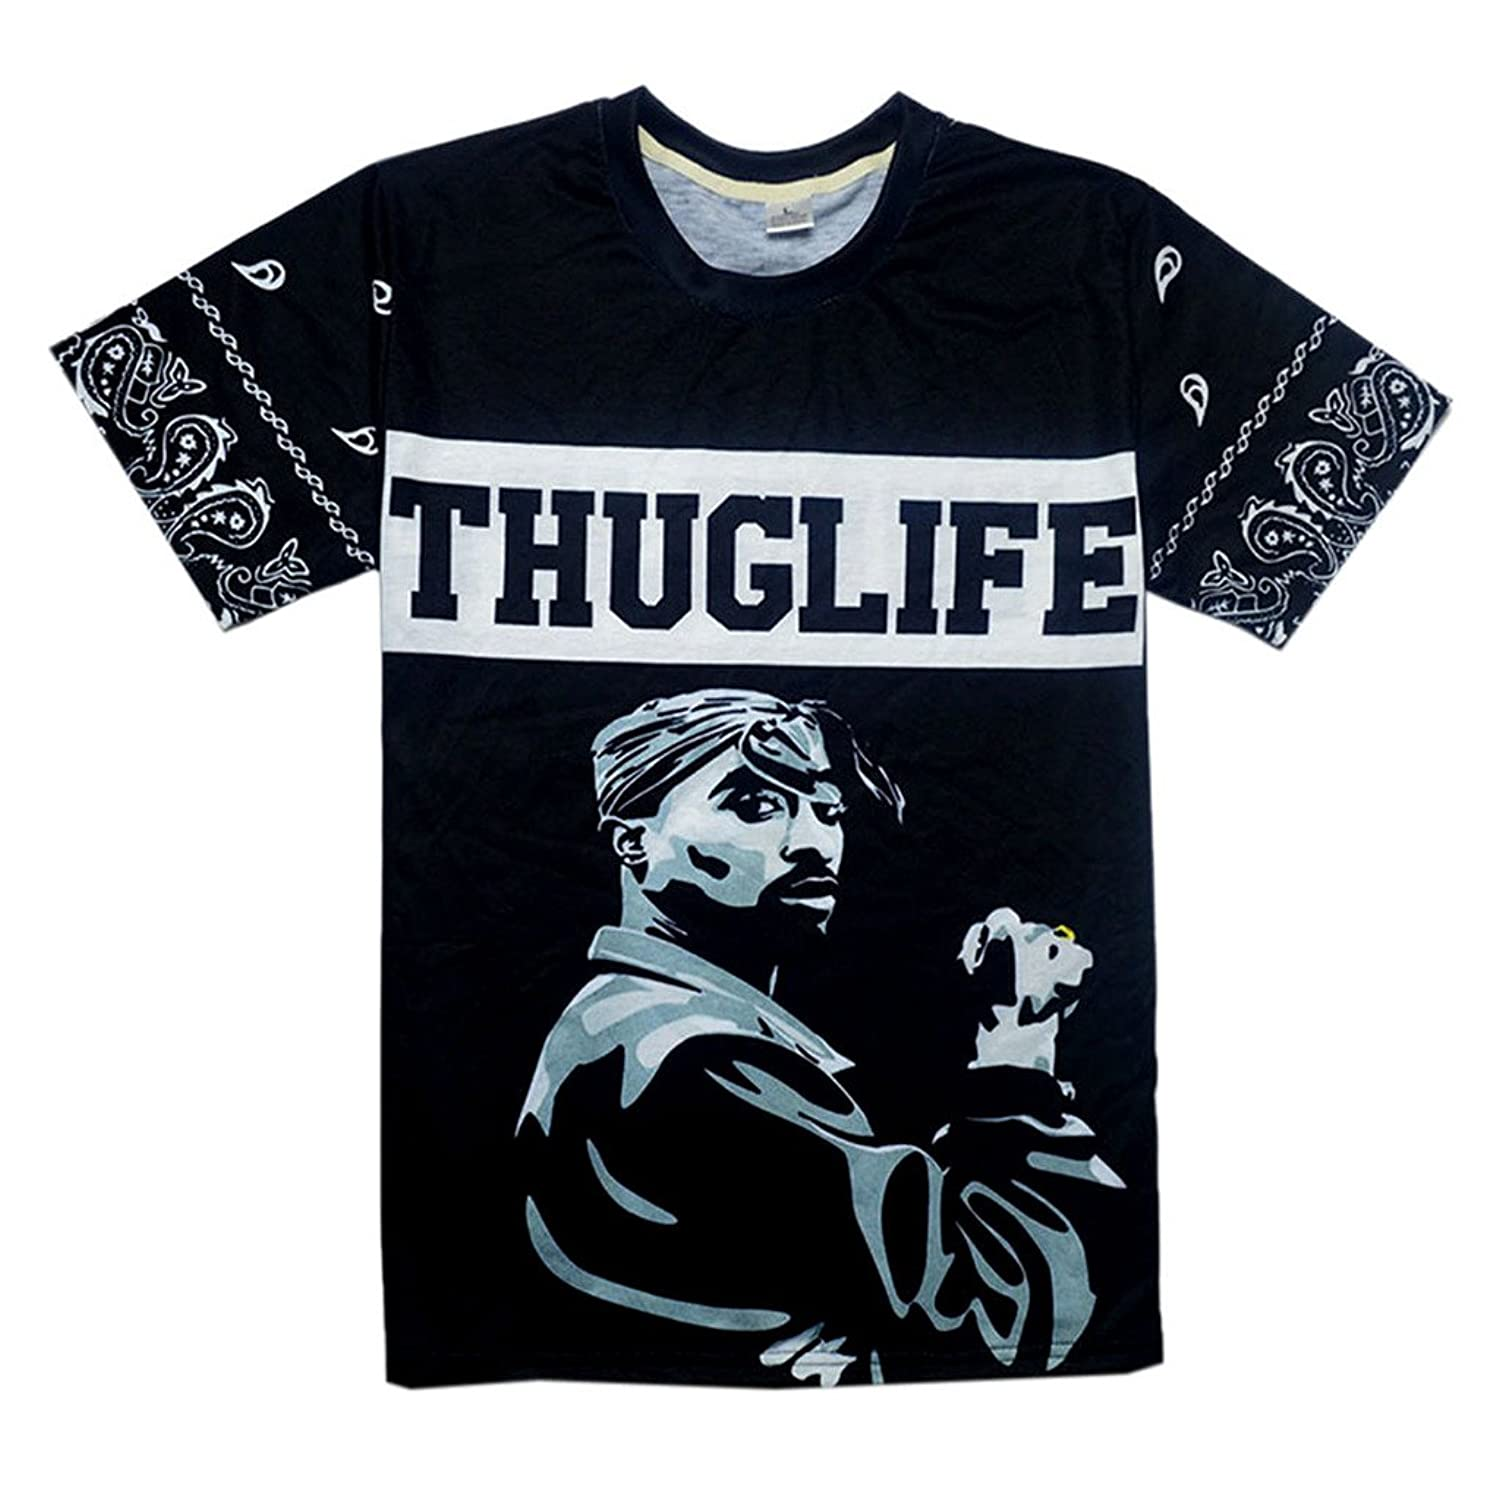 Bolany Men's Hip Hop Tupac 2pac 3d Printed Crew Neck Short Sleeve T-Shirt